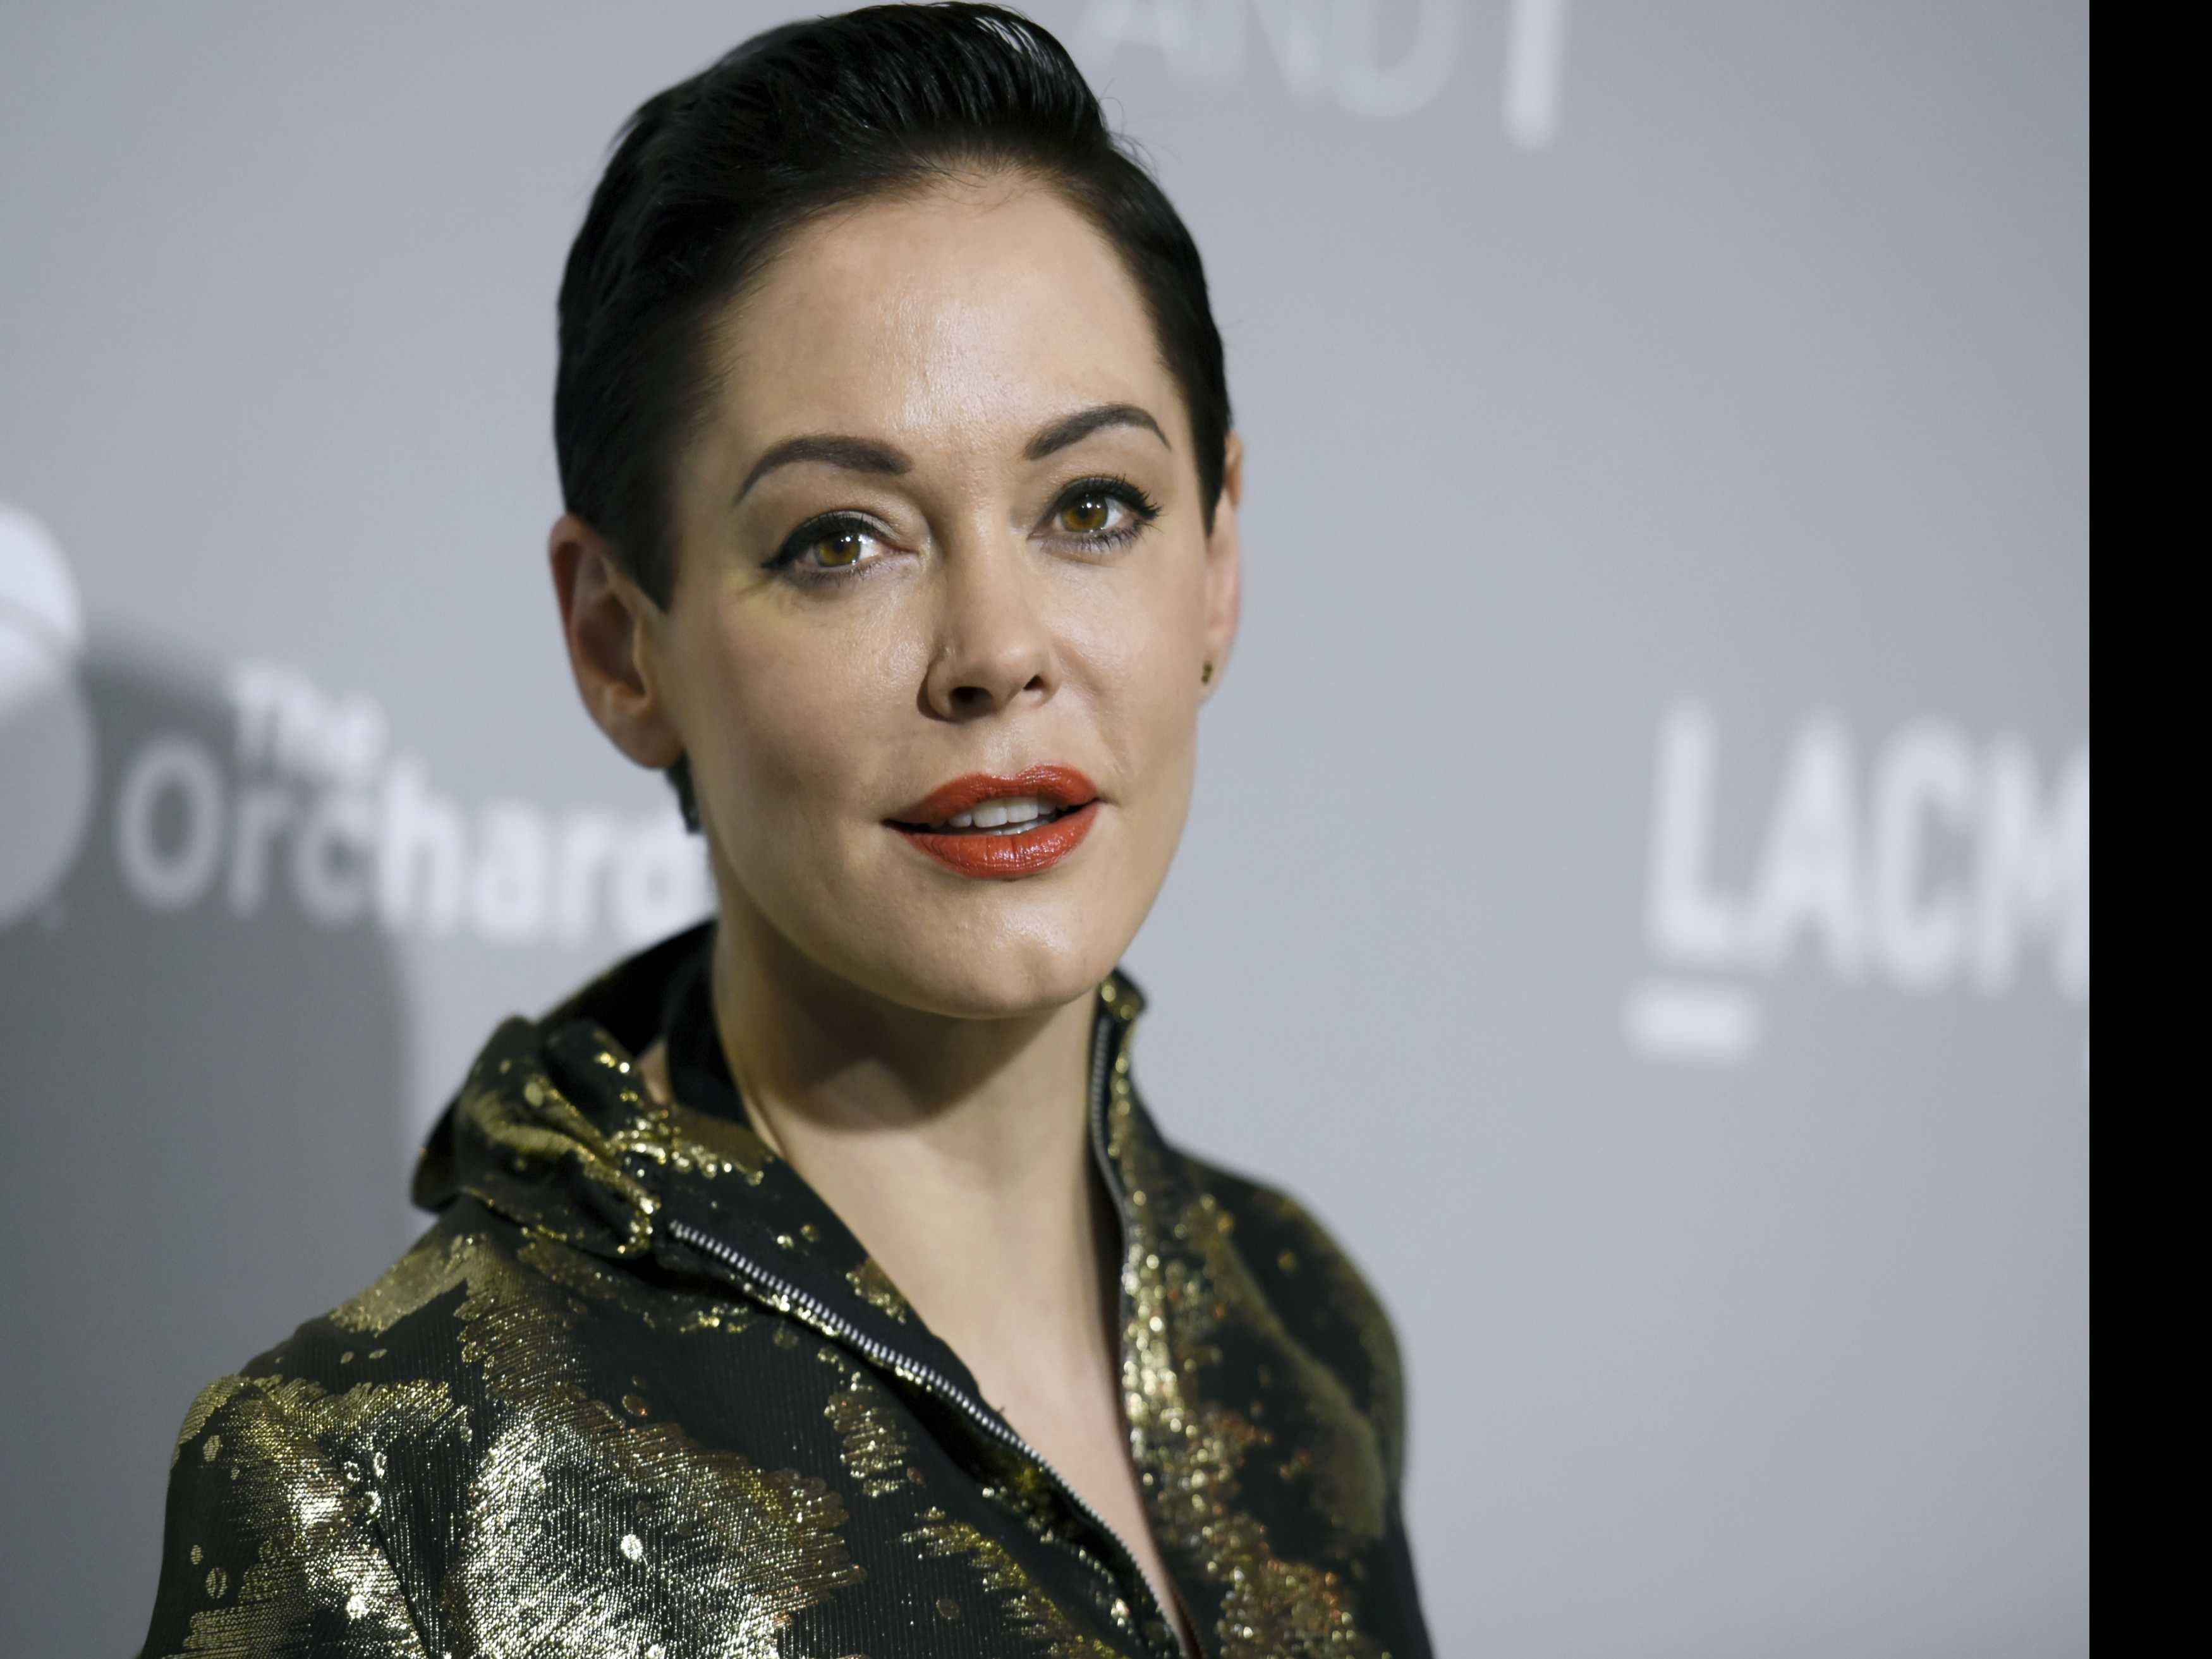 Twitter Restores Rose McGowan's Account After Outcry